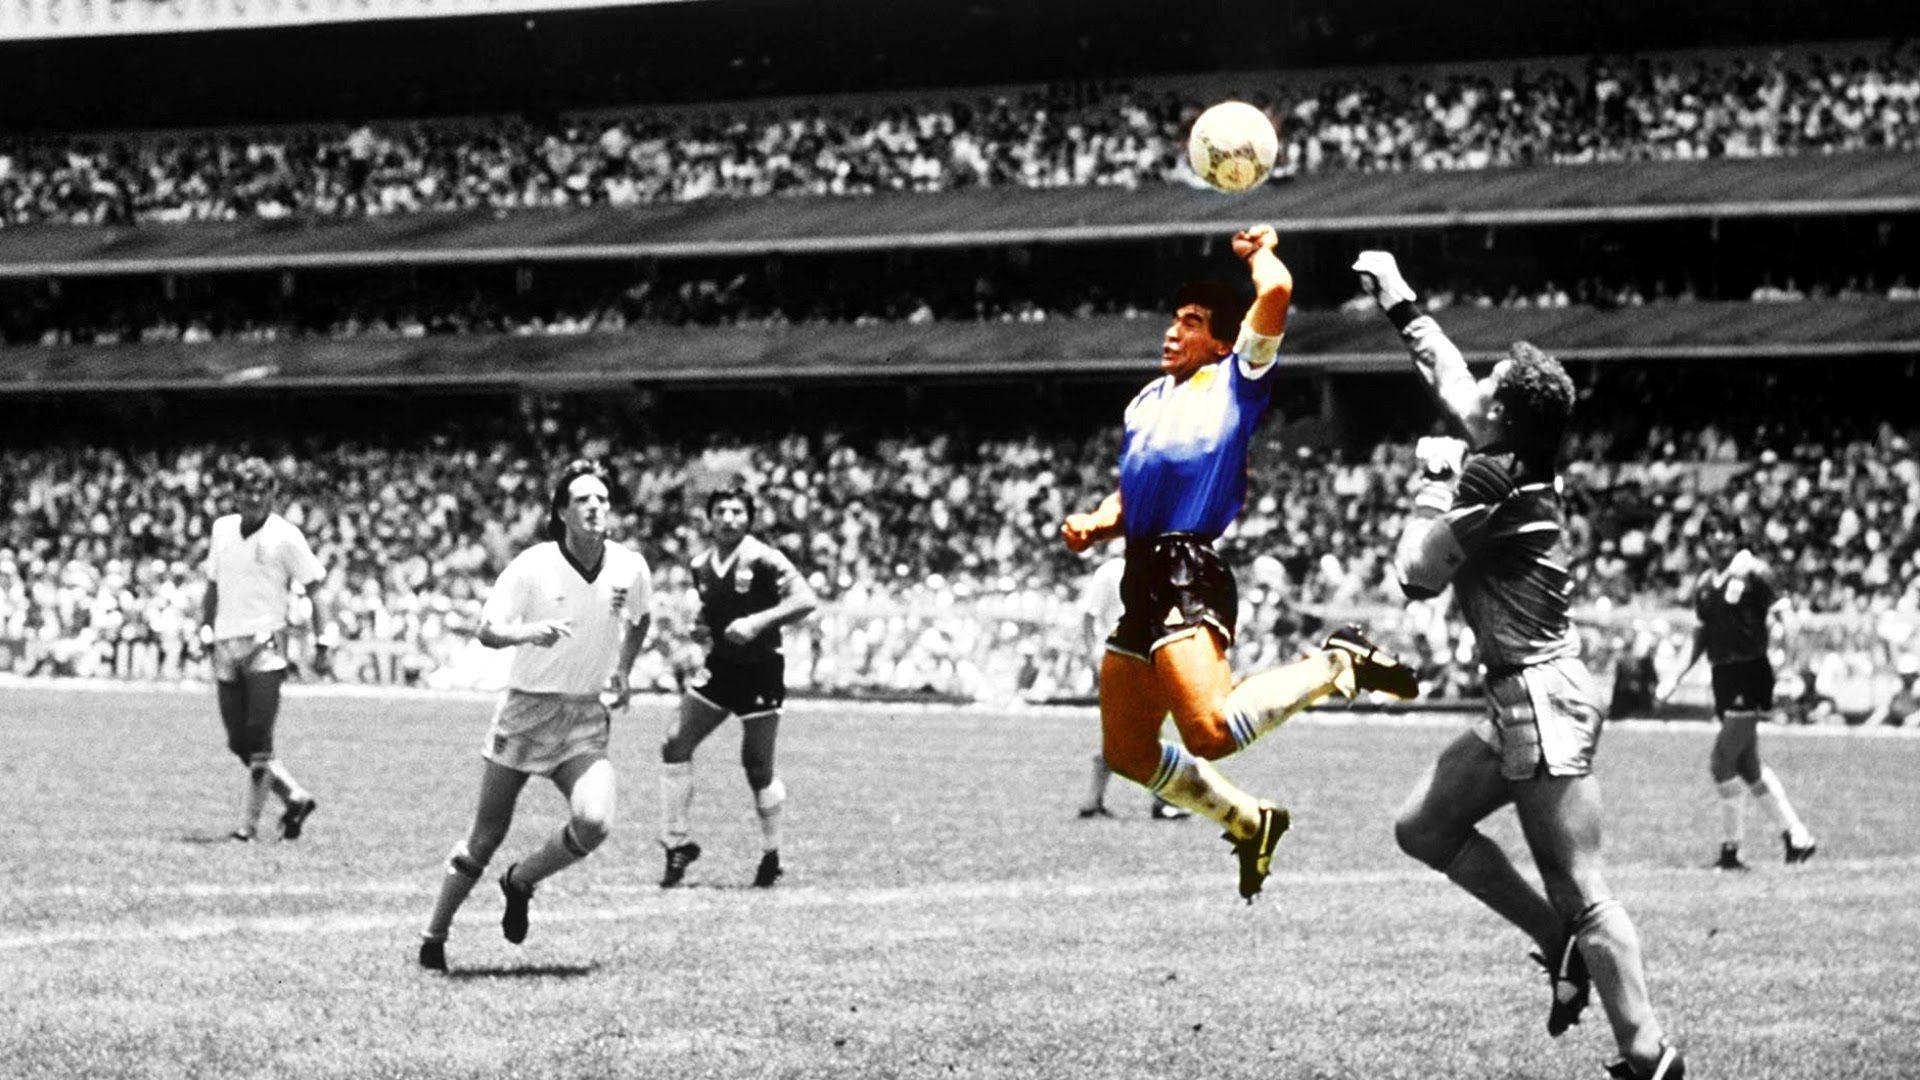 Diego Maradona Wallpapers HD Facebook Cover • iPhones Wallpapers